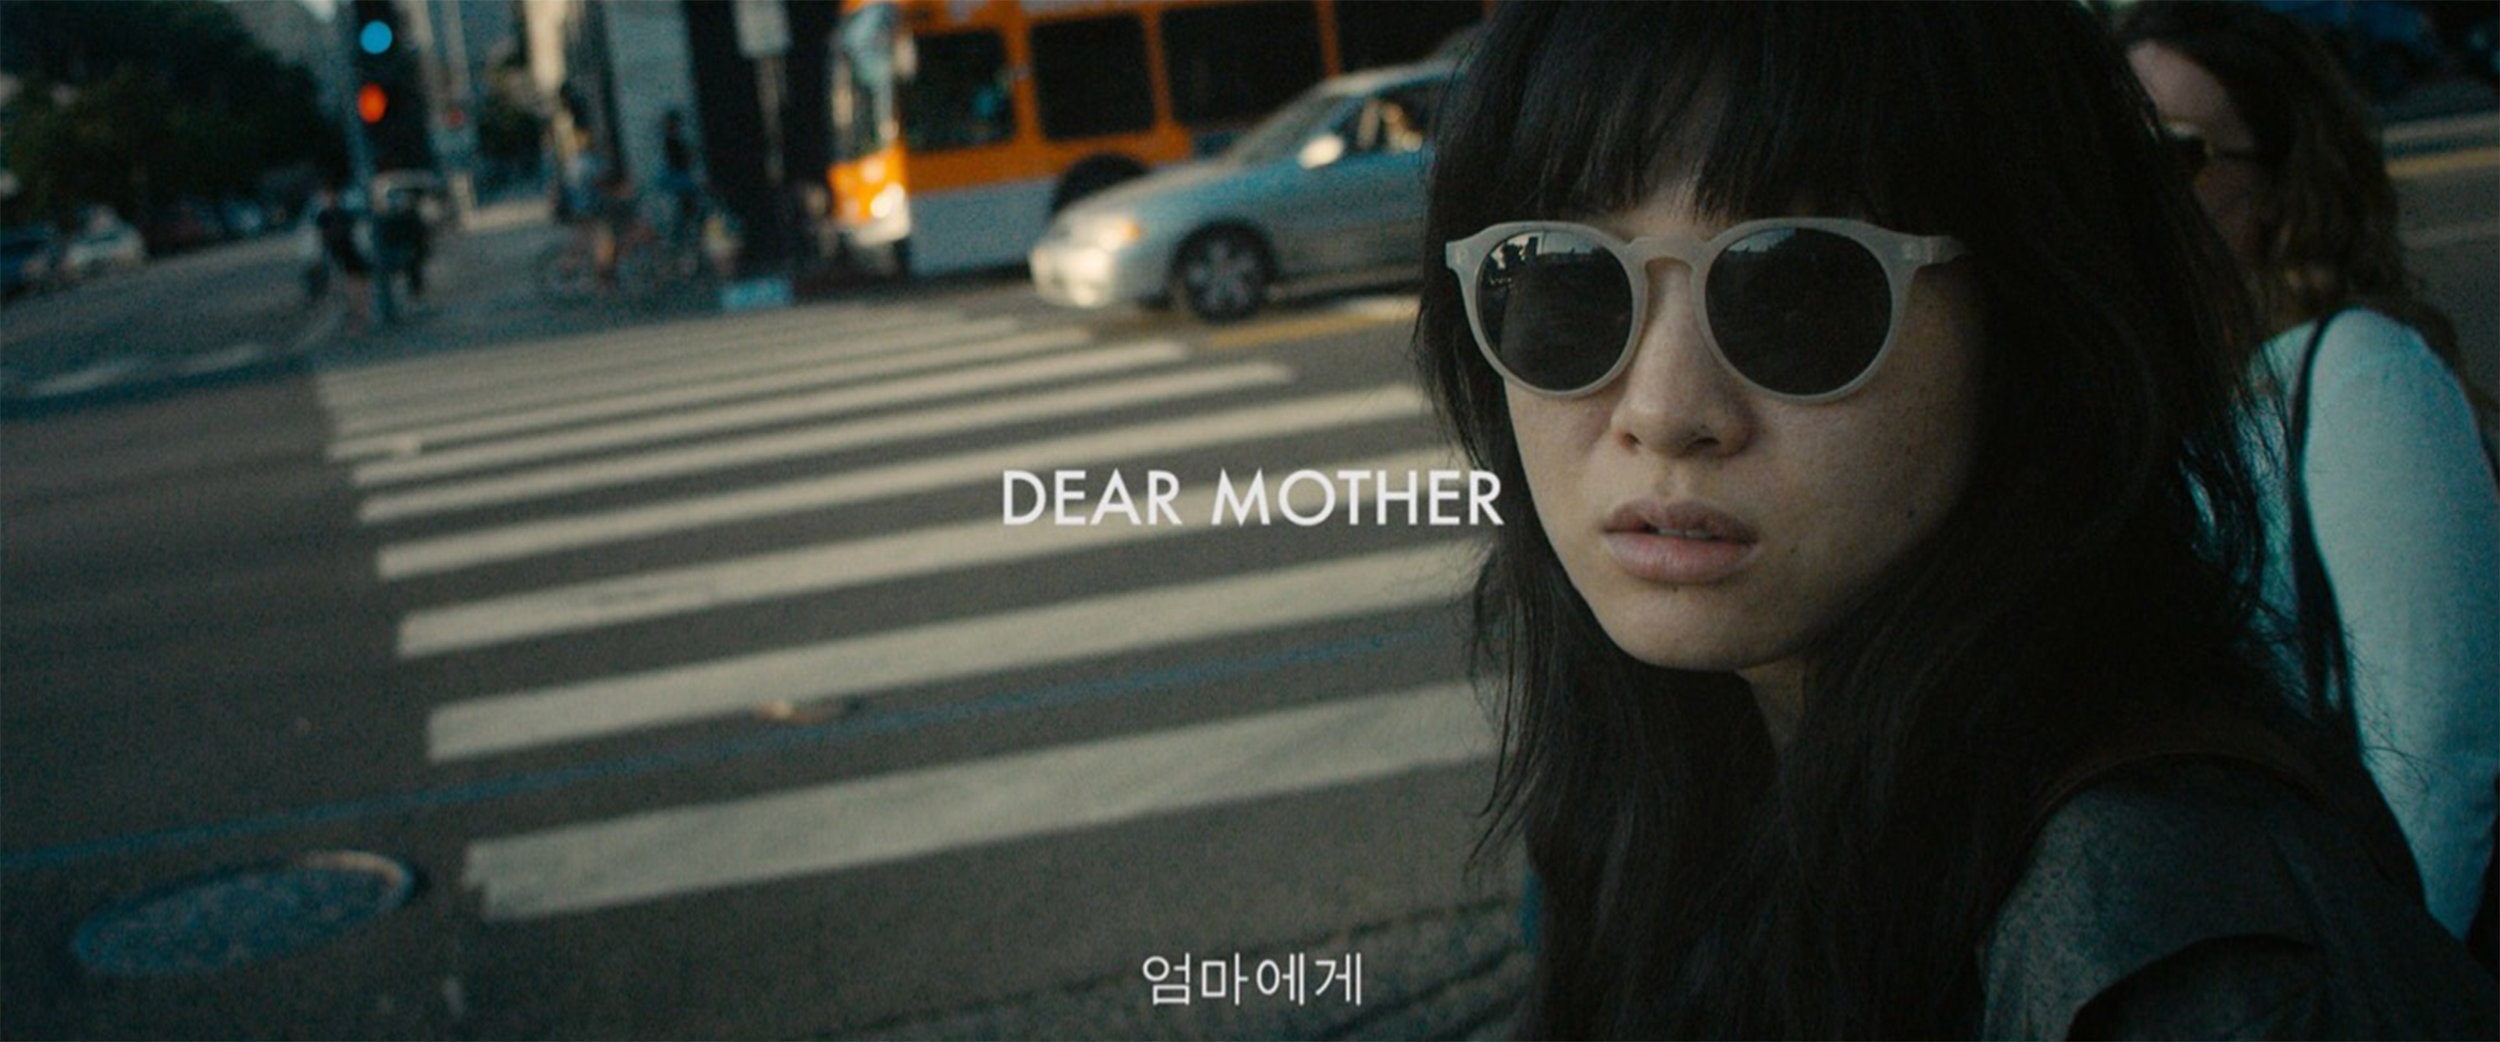 Deart Mother 1.jpg